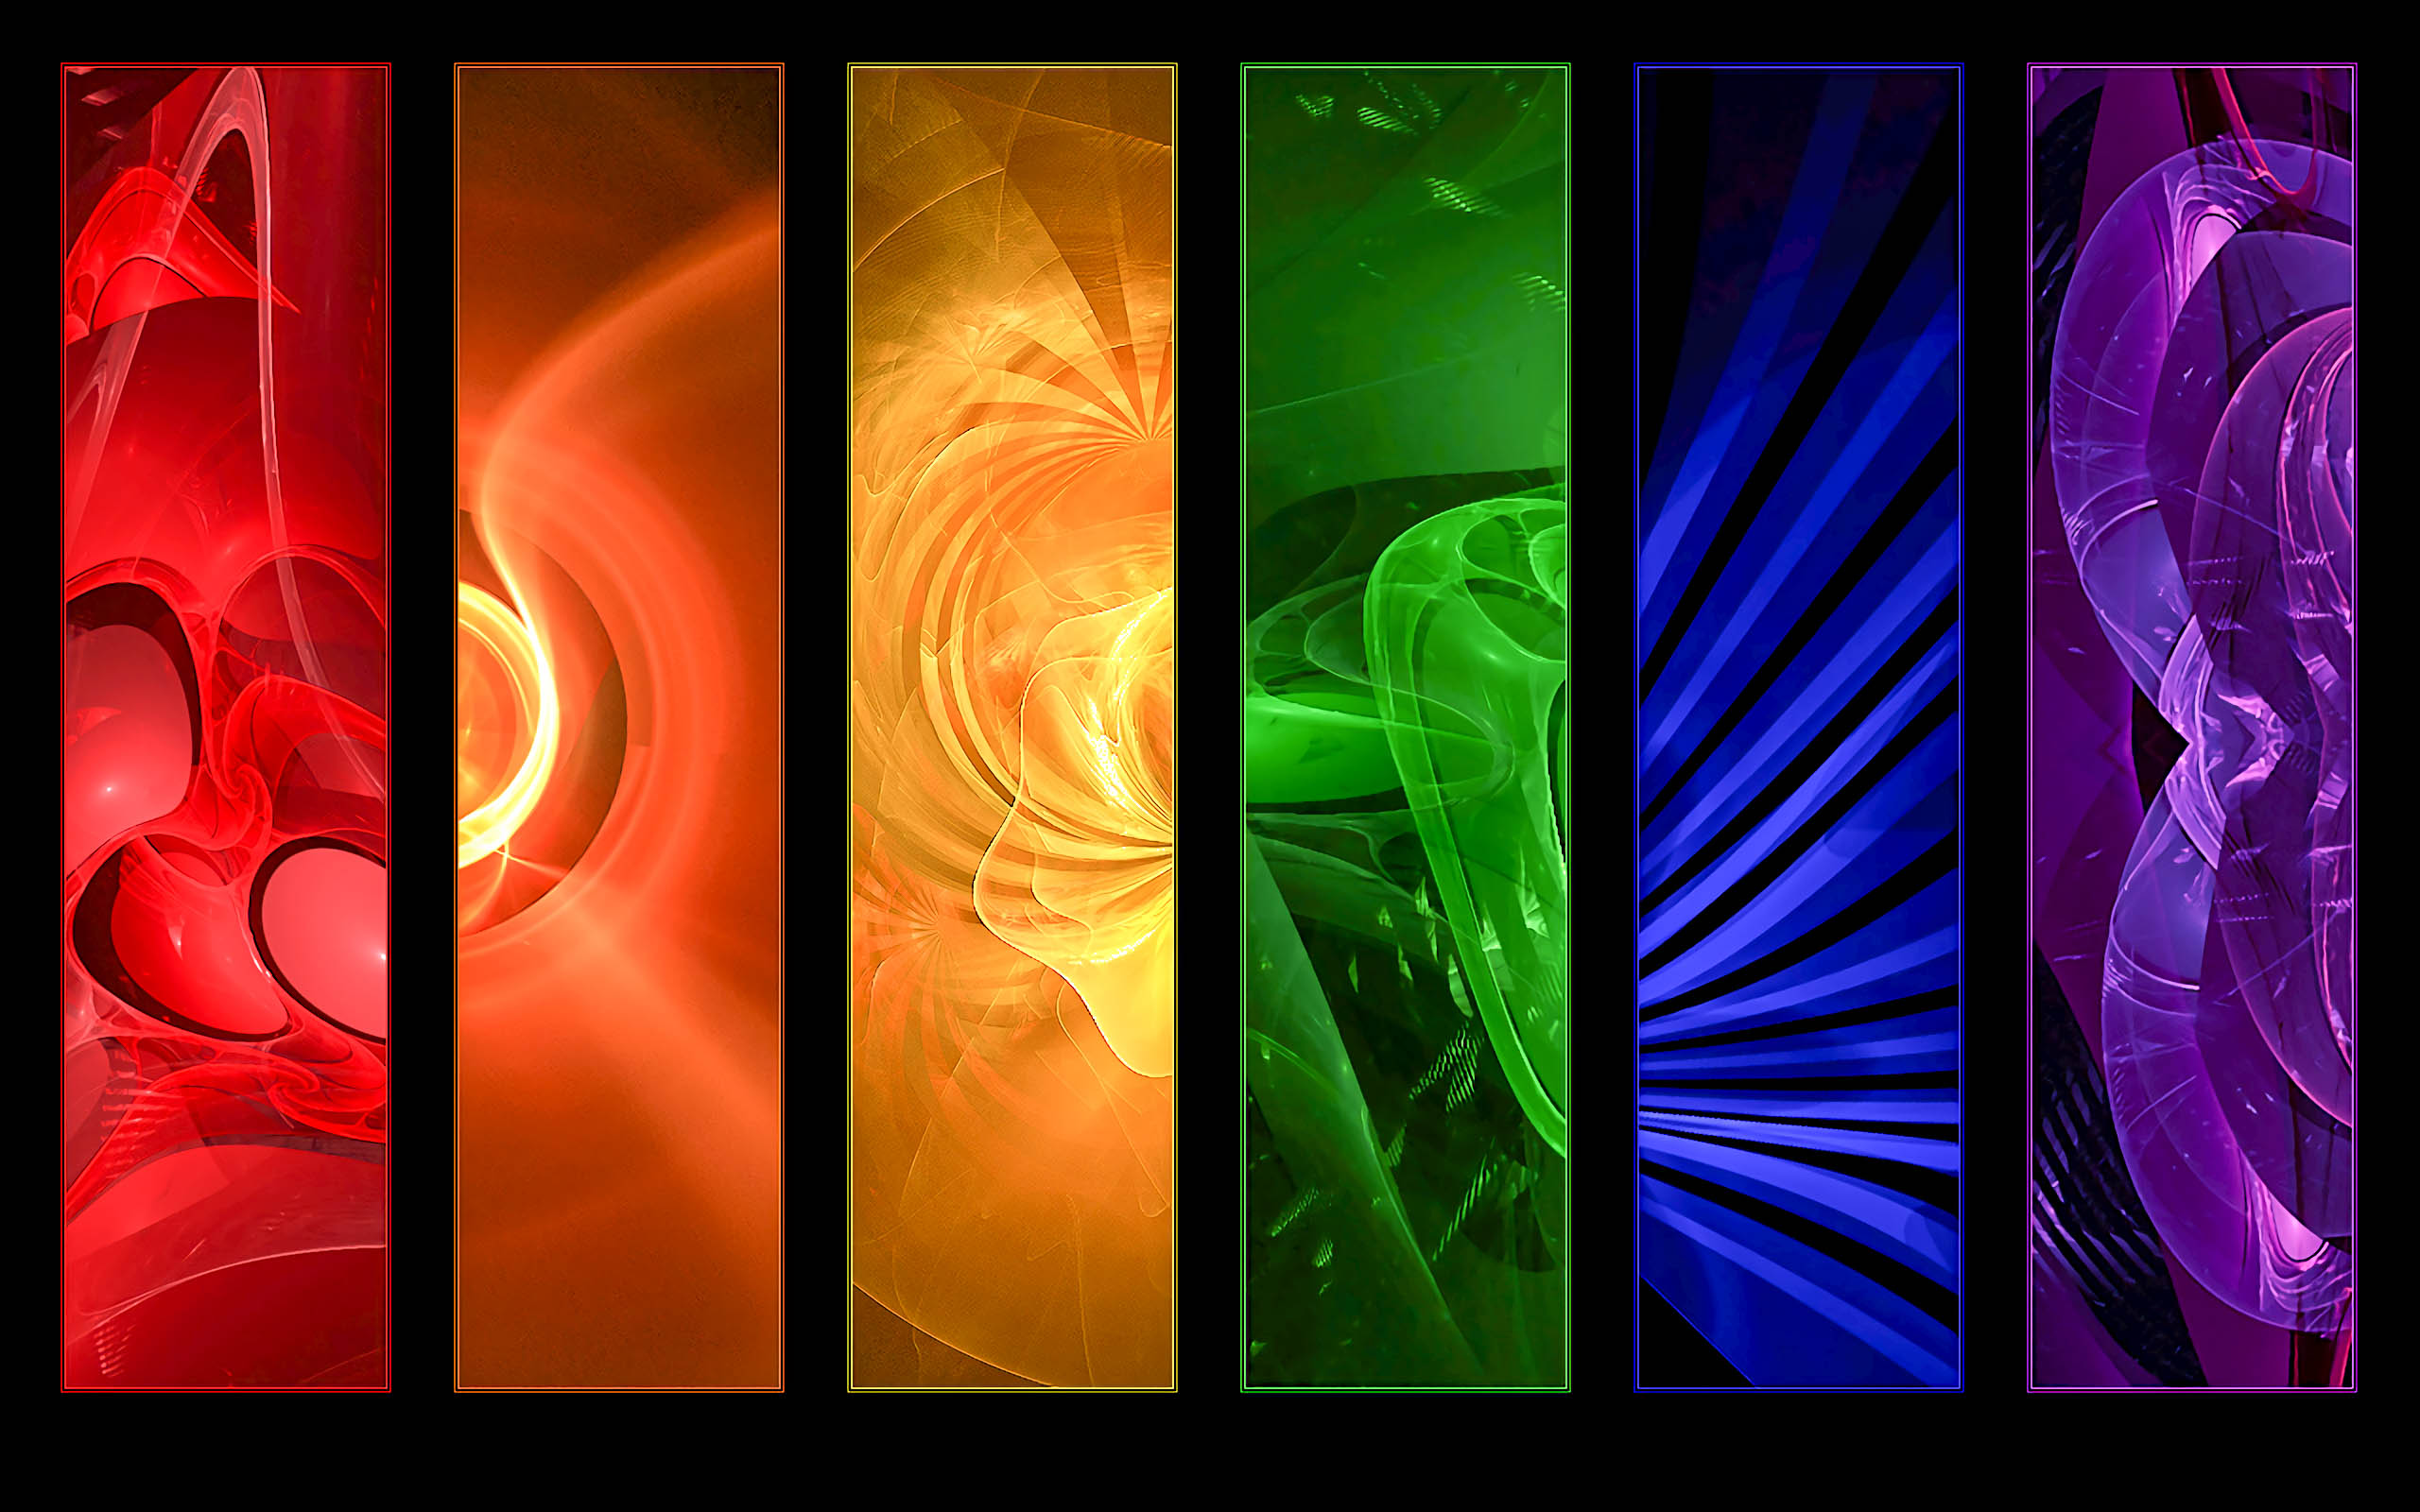 Cool 3d Ipad Wallpapers Abstract Cool Hd Pictures Amp Images High Resolution All